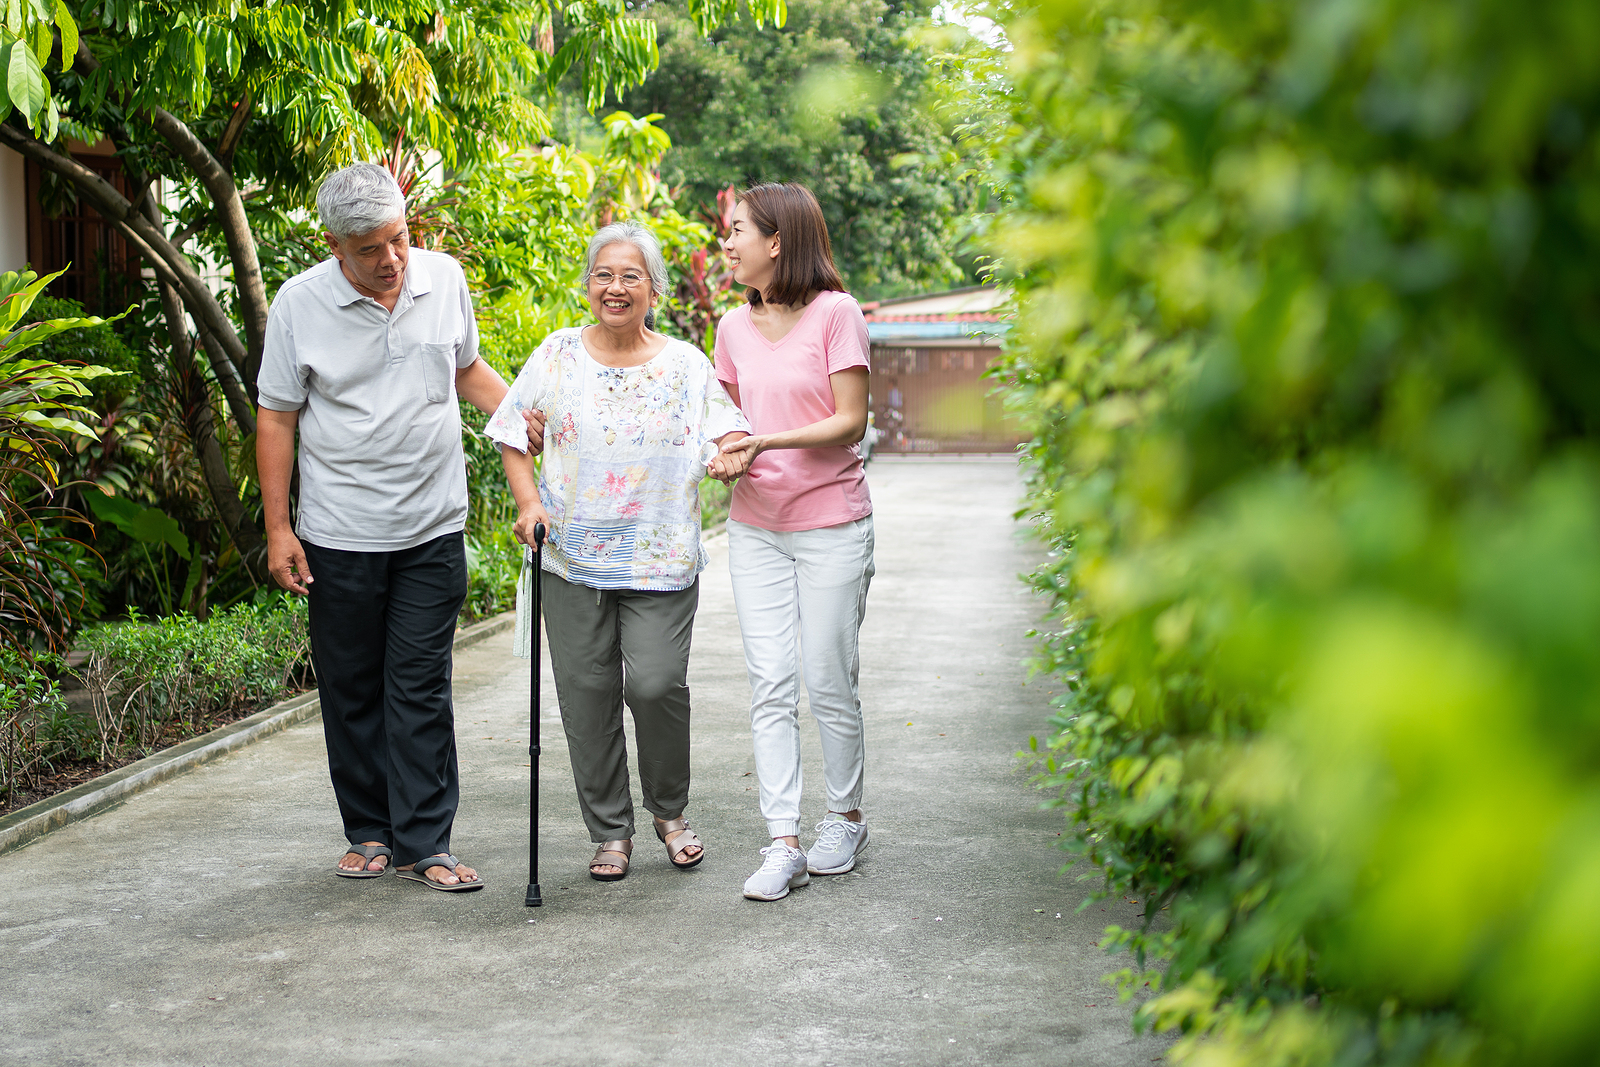 a senior woman using a cane to prevent falling as she walks along a path with family members